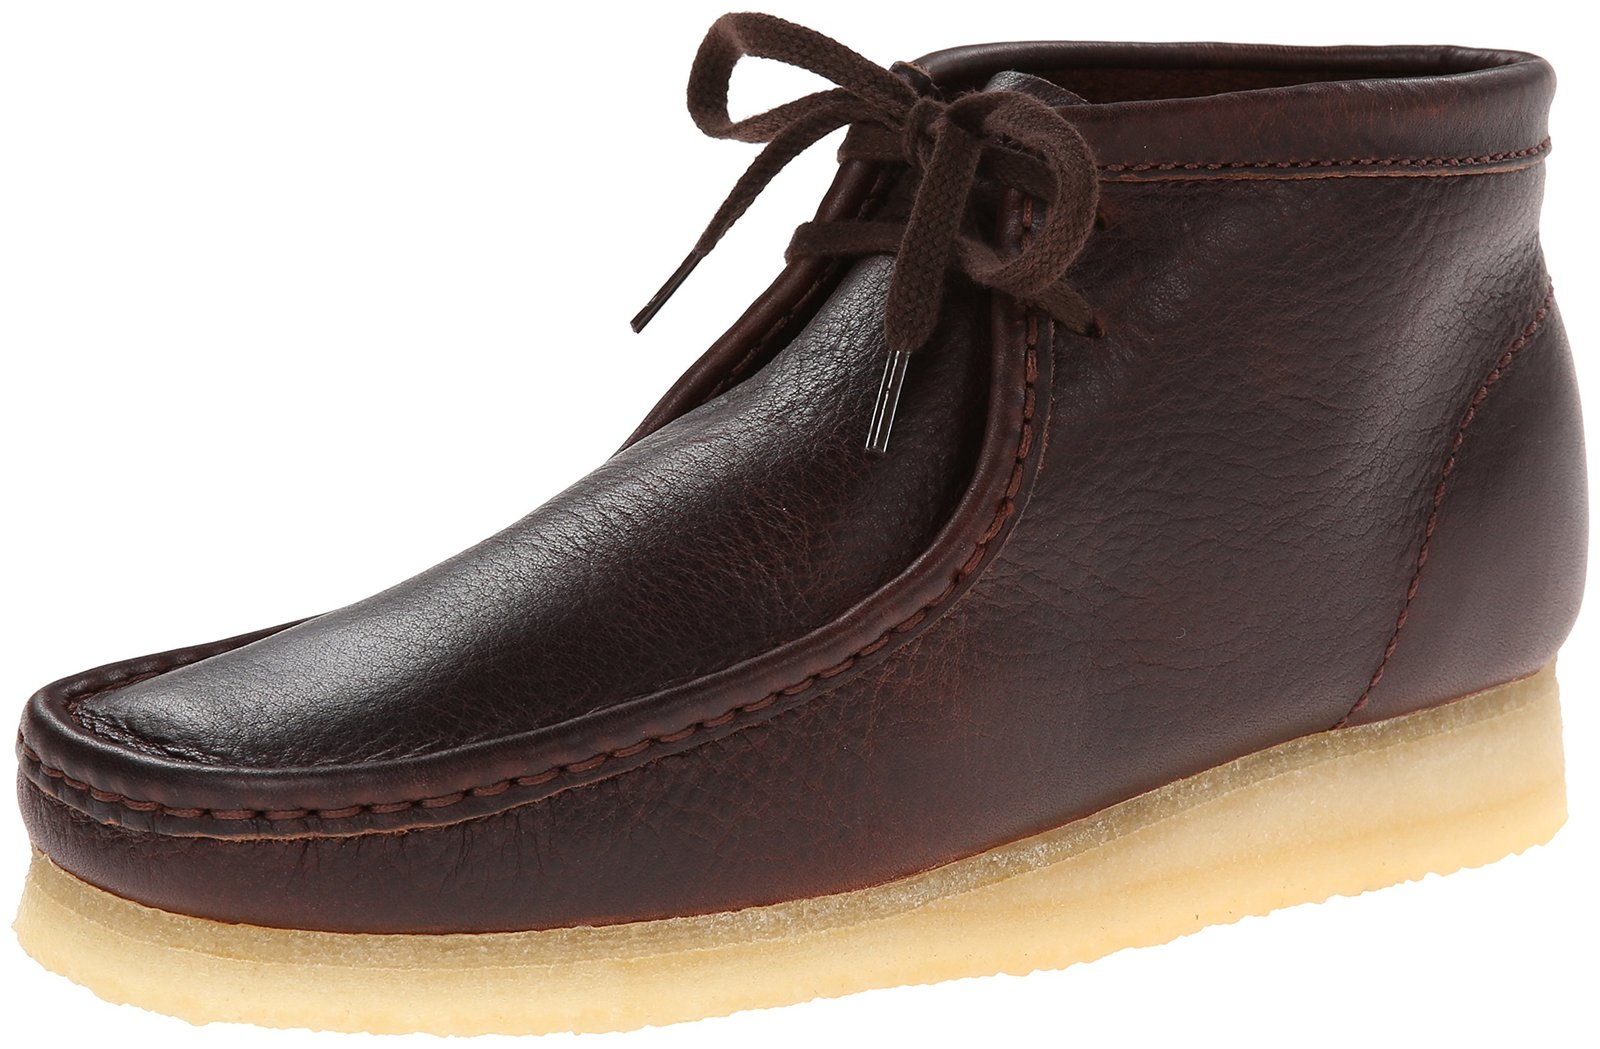 Clarks Men's Wallabee B Chukka Boot,Brown Leather,8 M US